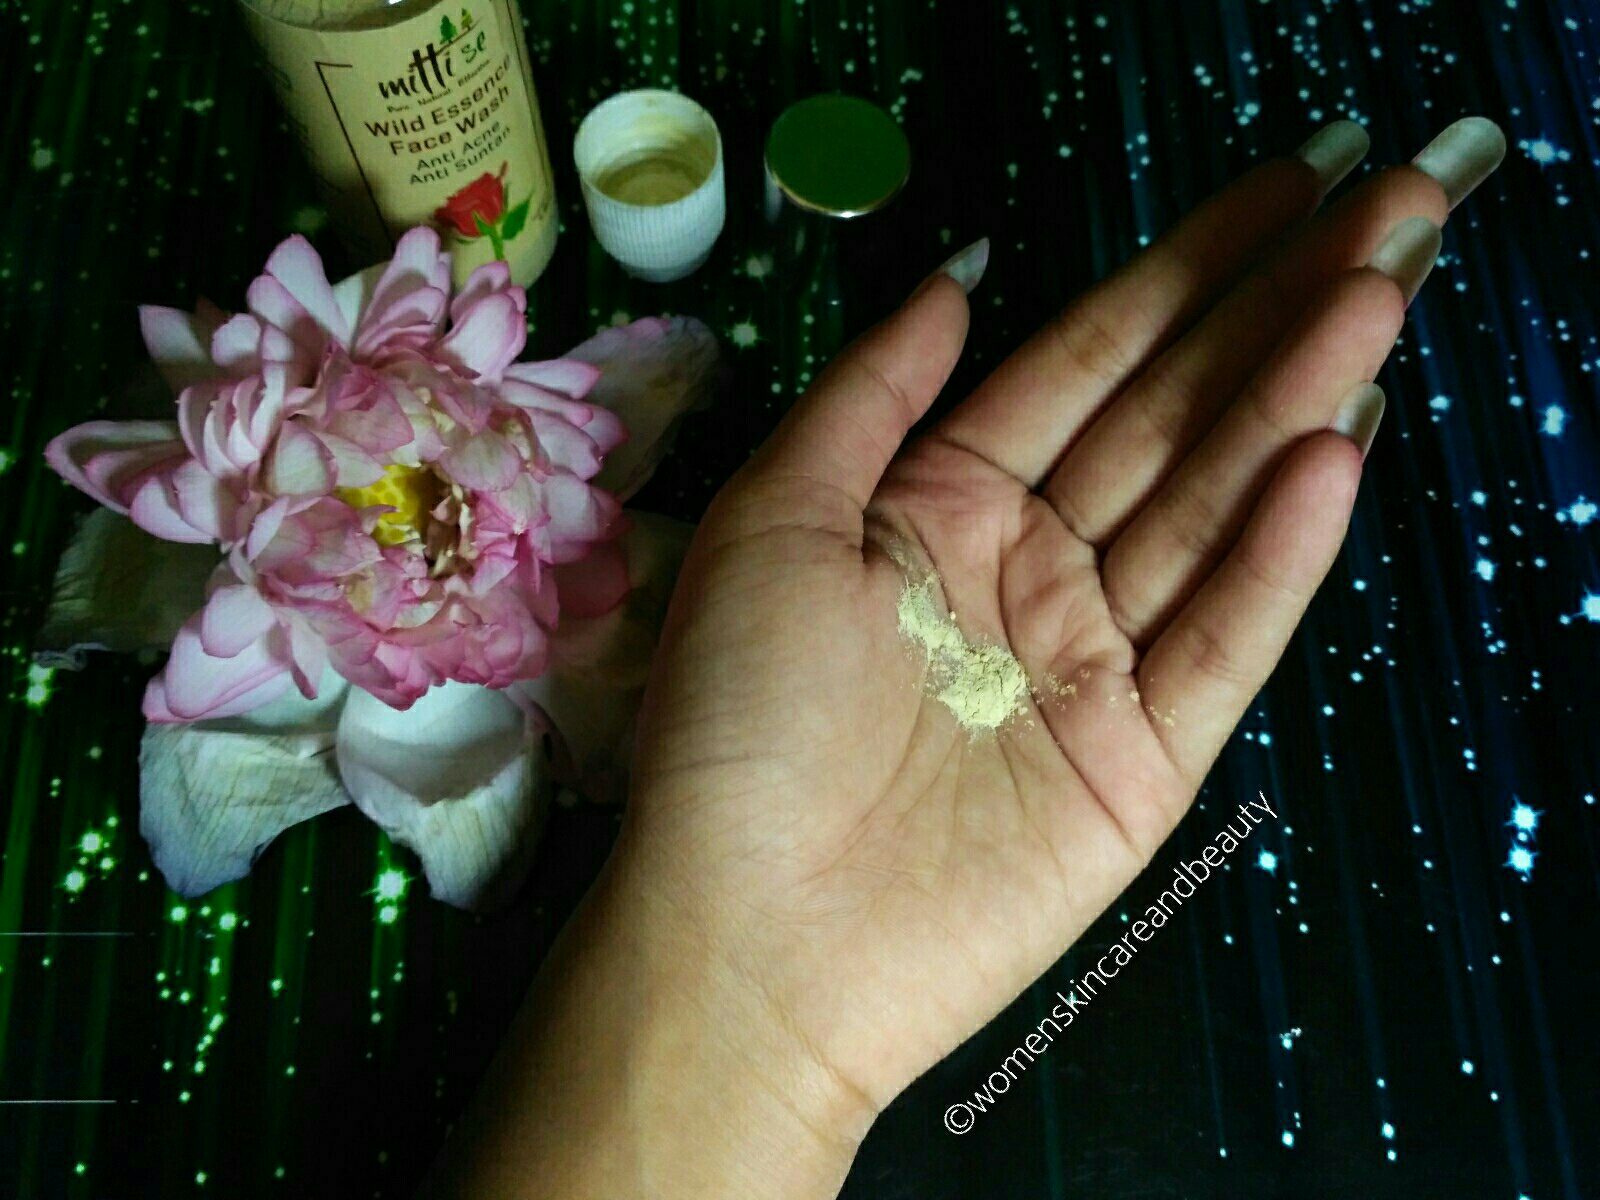 Mitti Se Wild Essence Face Wash